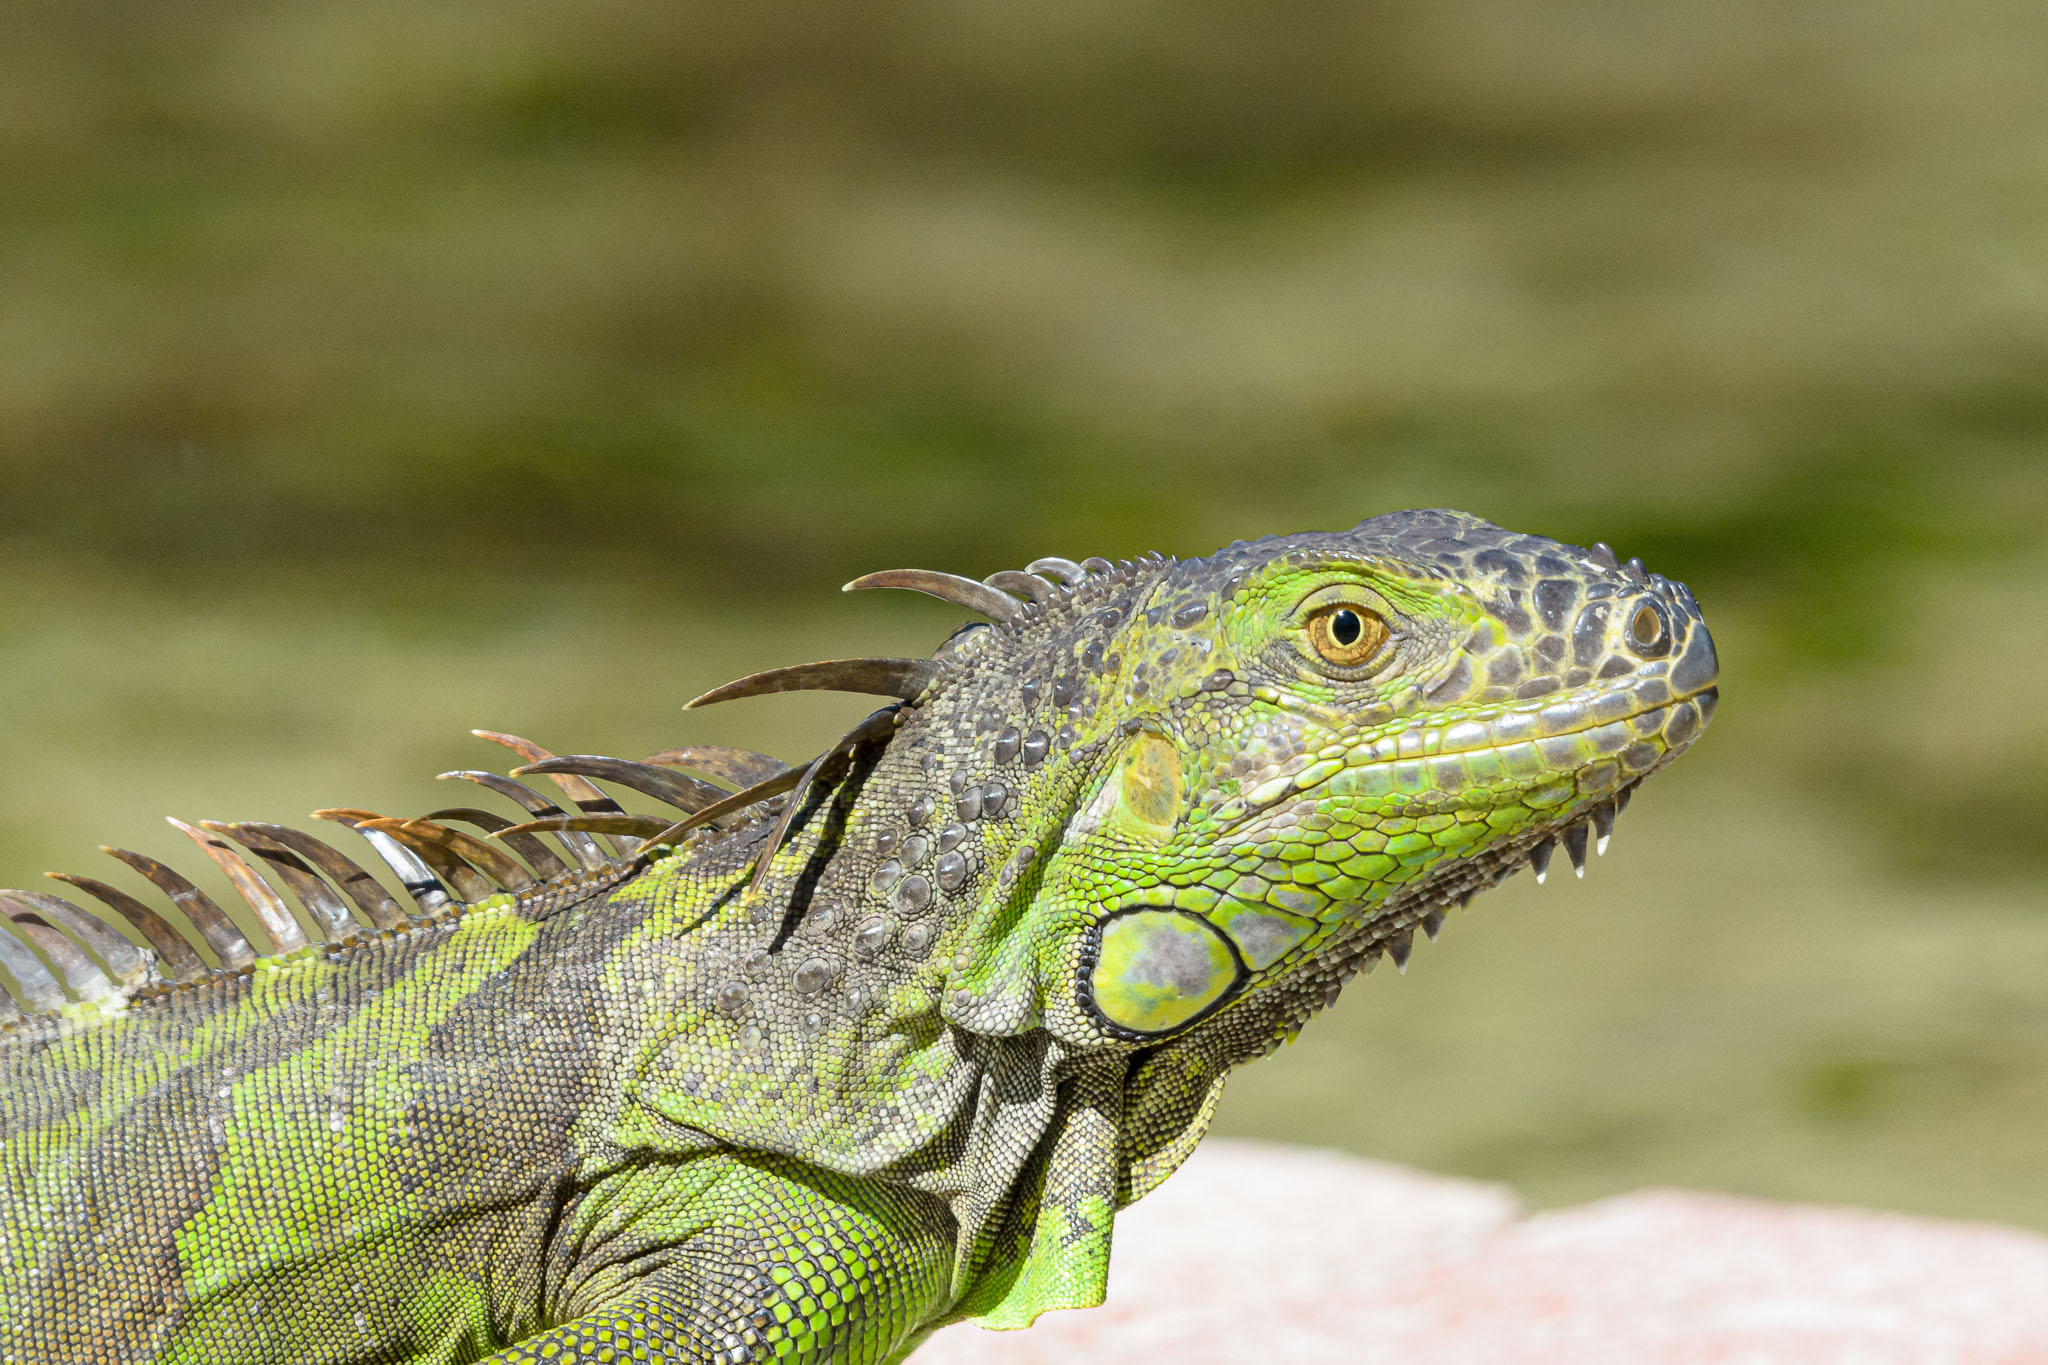 It is often easy to photograph a reptile as they do tend to spend a lot of time in the sun just chilling. A bit of calm and a gentle approach allows for easy photos. Similar sized mammals or birds just move way too fast.